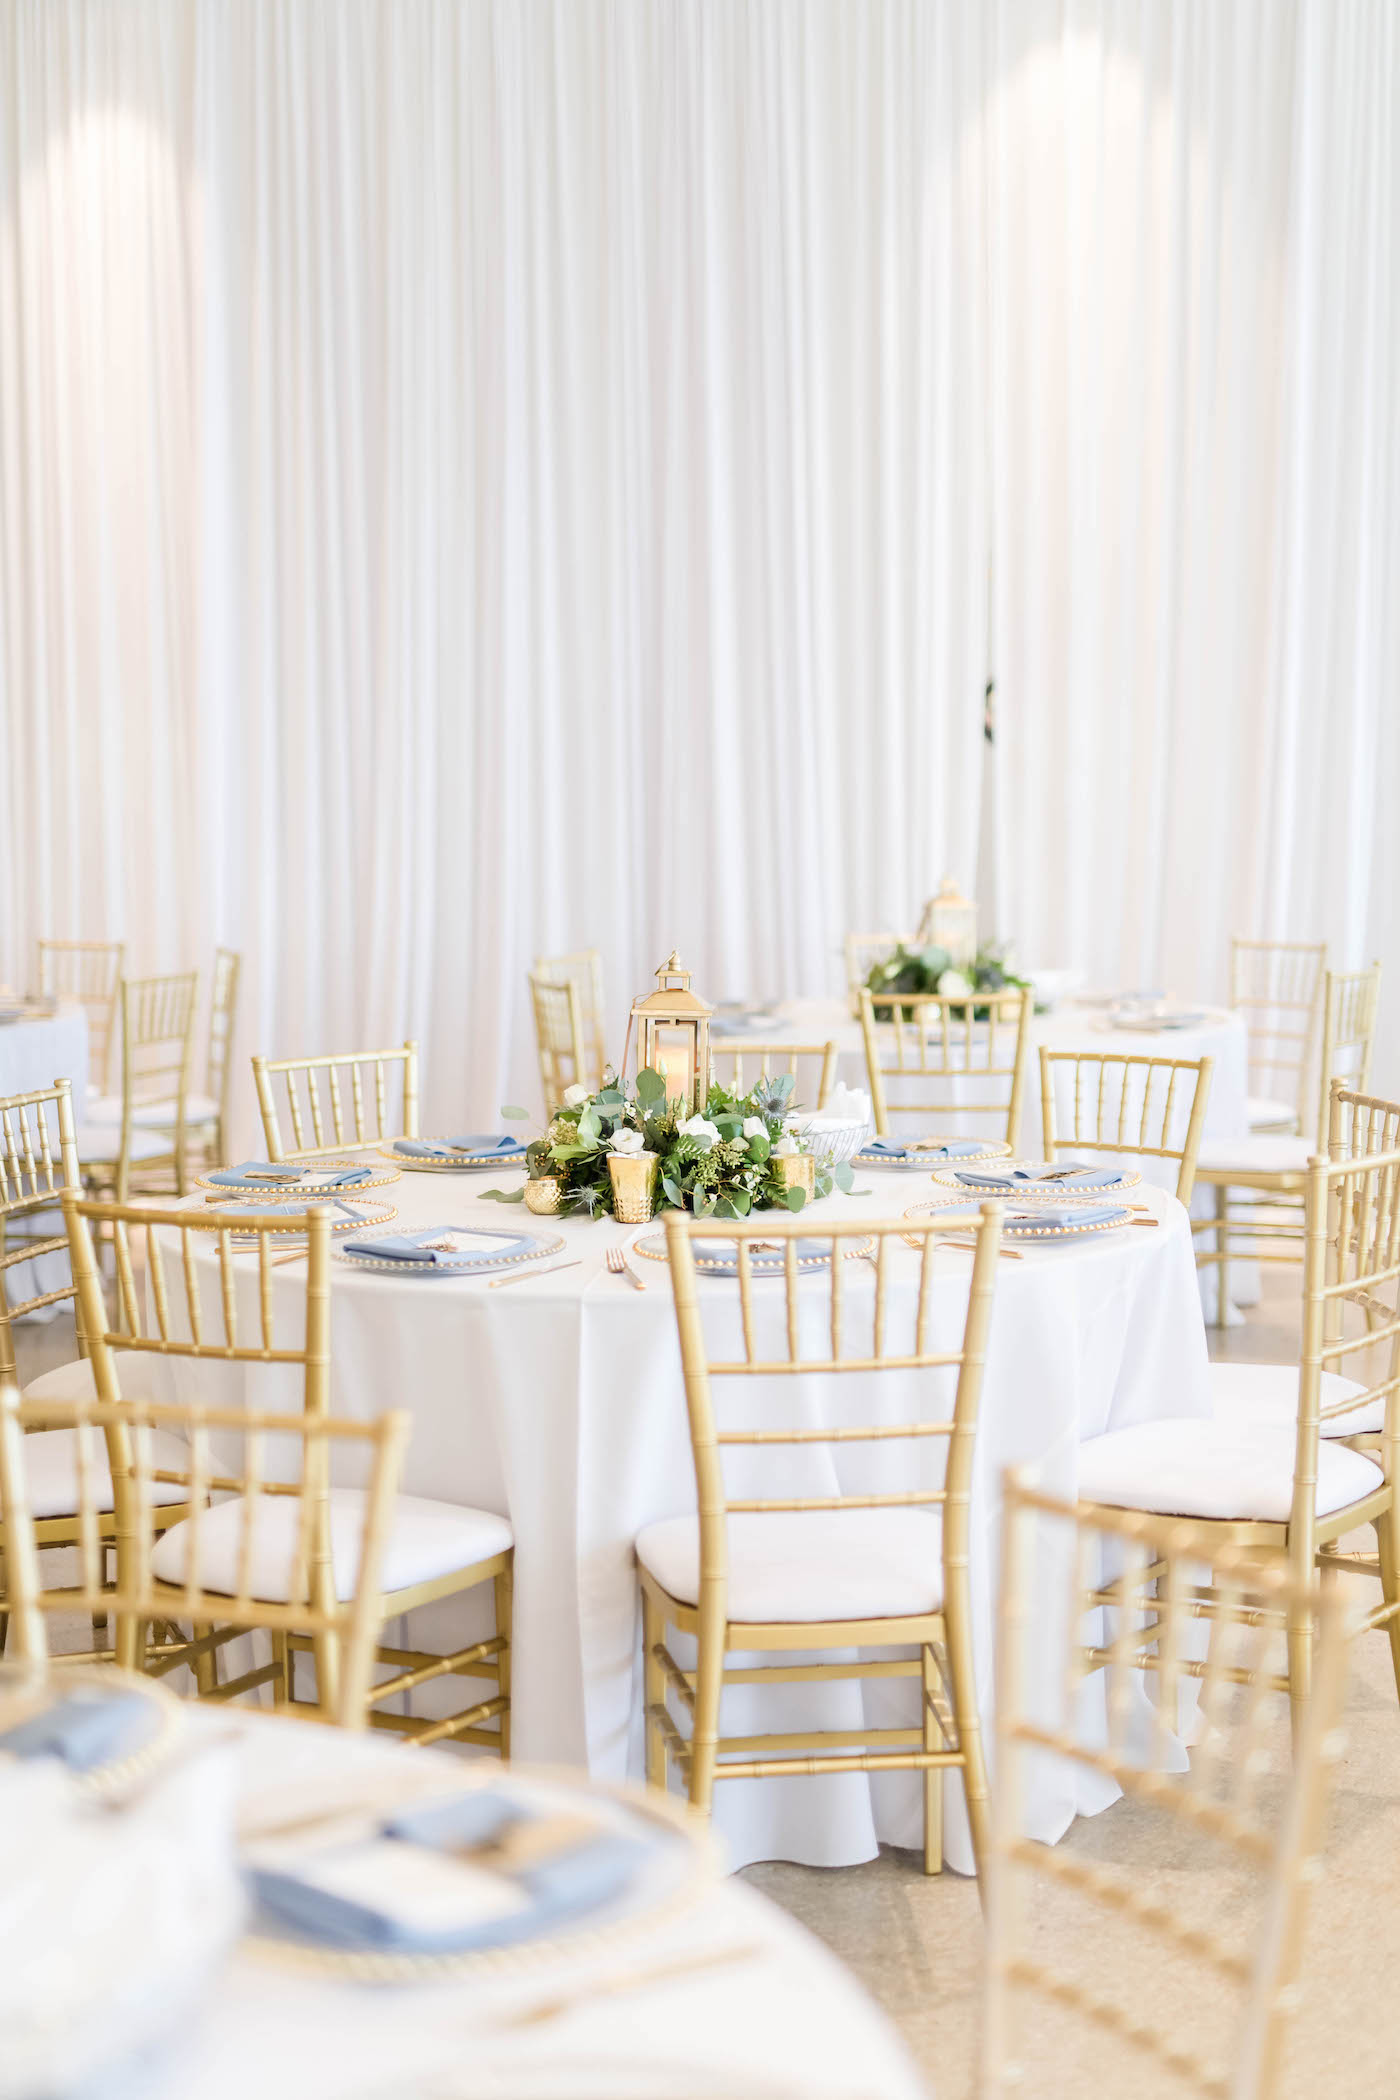 Tampa Wedding Venue the Tampa Garden Club Indoor Reception   Wedding Reception Tables with White Linens and Gold Chiavari Chairs and Low Greenery and Lantern Centerpieces   Gabro Event Services   Lynn's Catering of Tampa